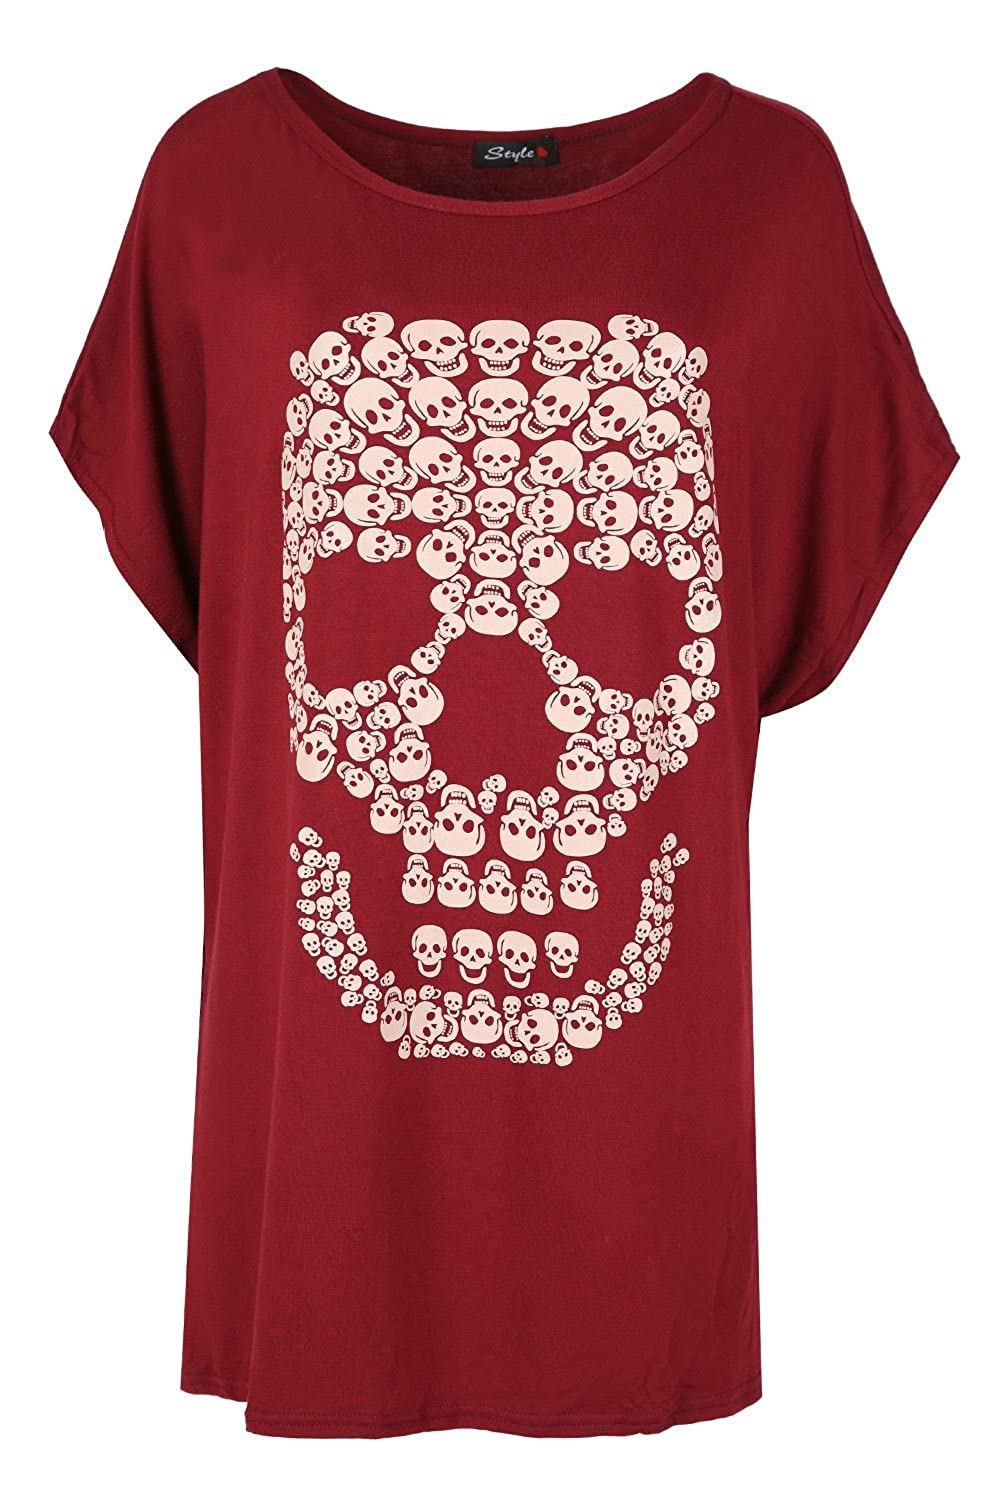 Oops Outlet Womens Halloween Party Baggy Lagenlook Top Ladies Spooky Skull Batwing Scary Loose Fit T Shirt BE JEALOUS